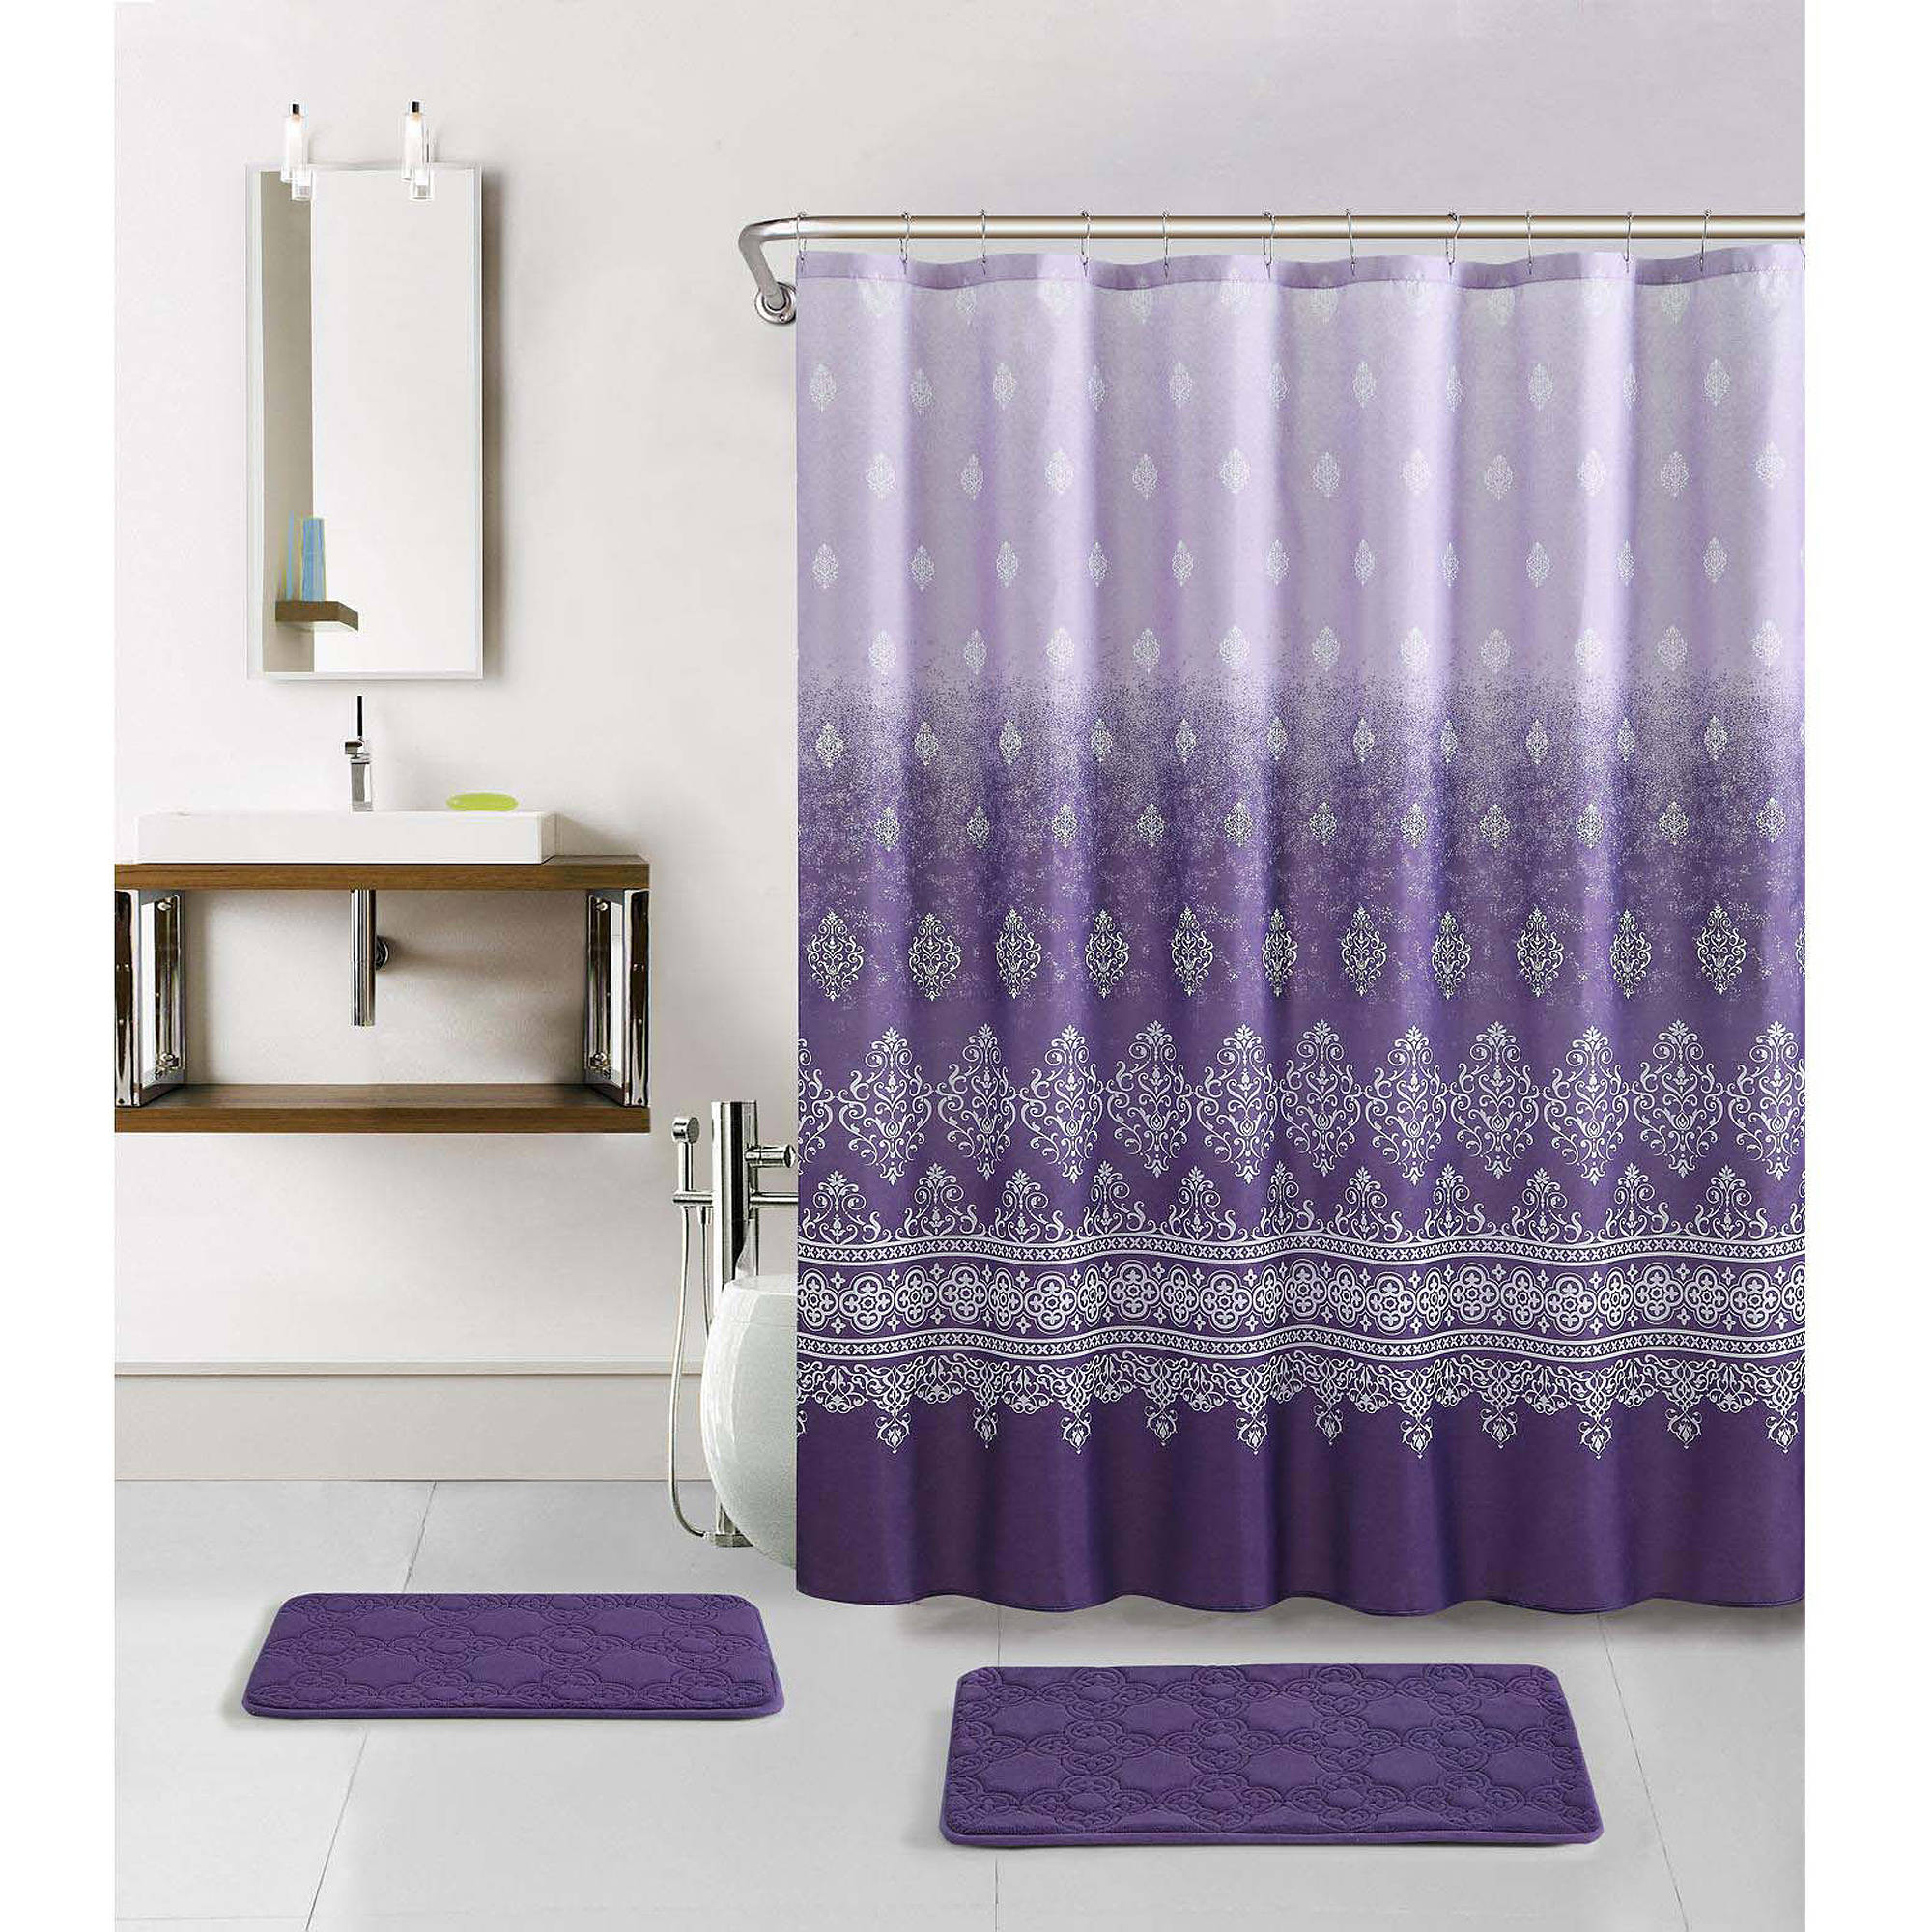 Shower Curtains And Rugs Sets • Shower Curtains Ideas